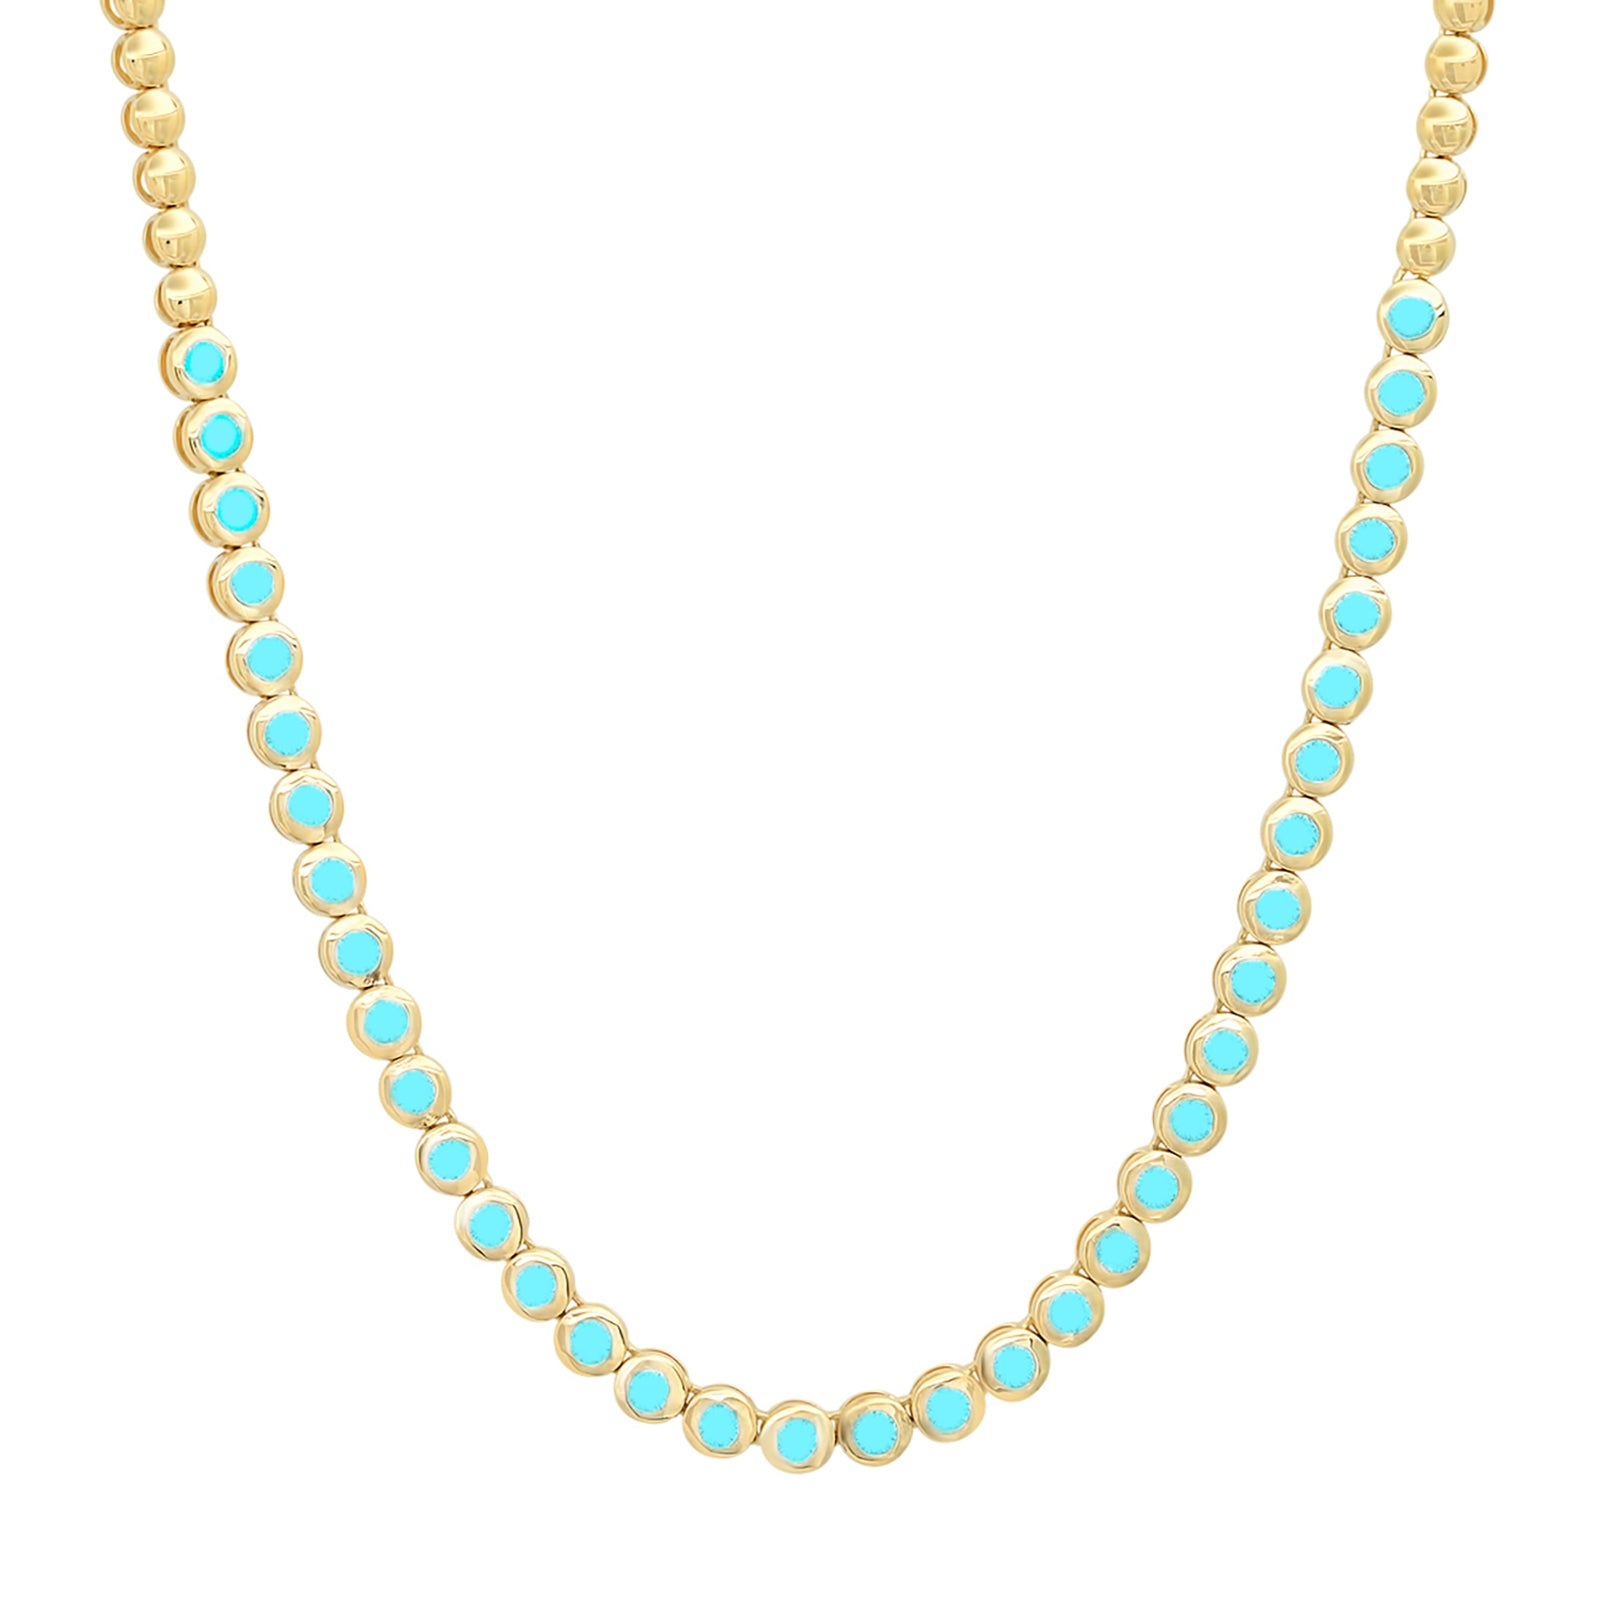 Jennifer Meyer Mini Bezel Tennis Necklace - Turquoise - Necklaces - Broken English Jewelry